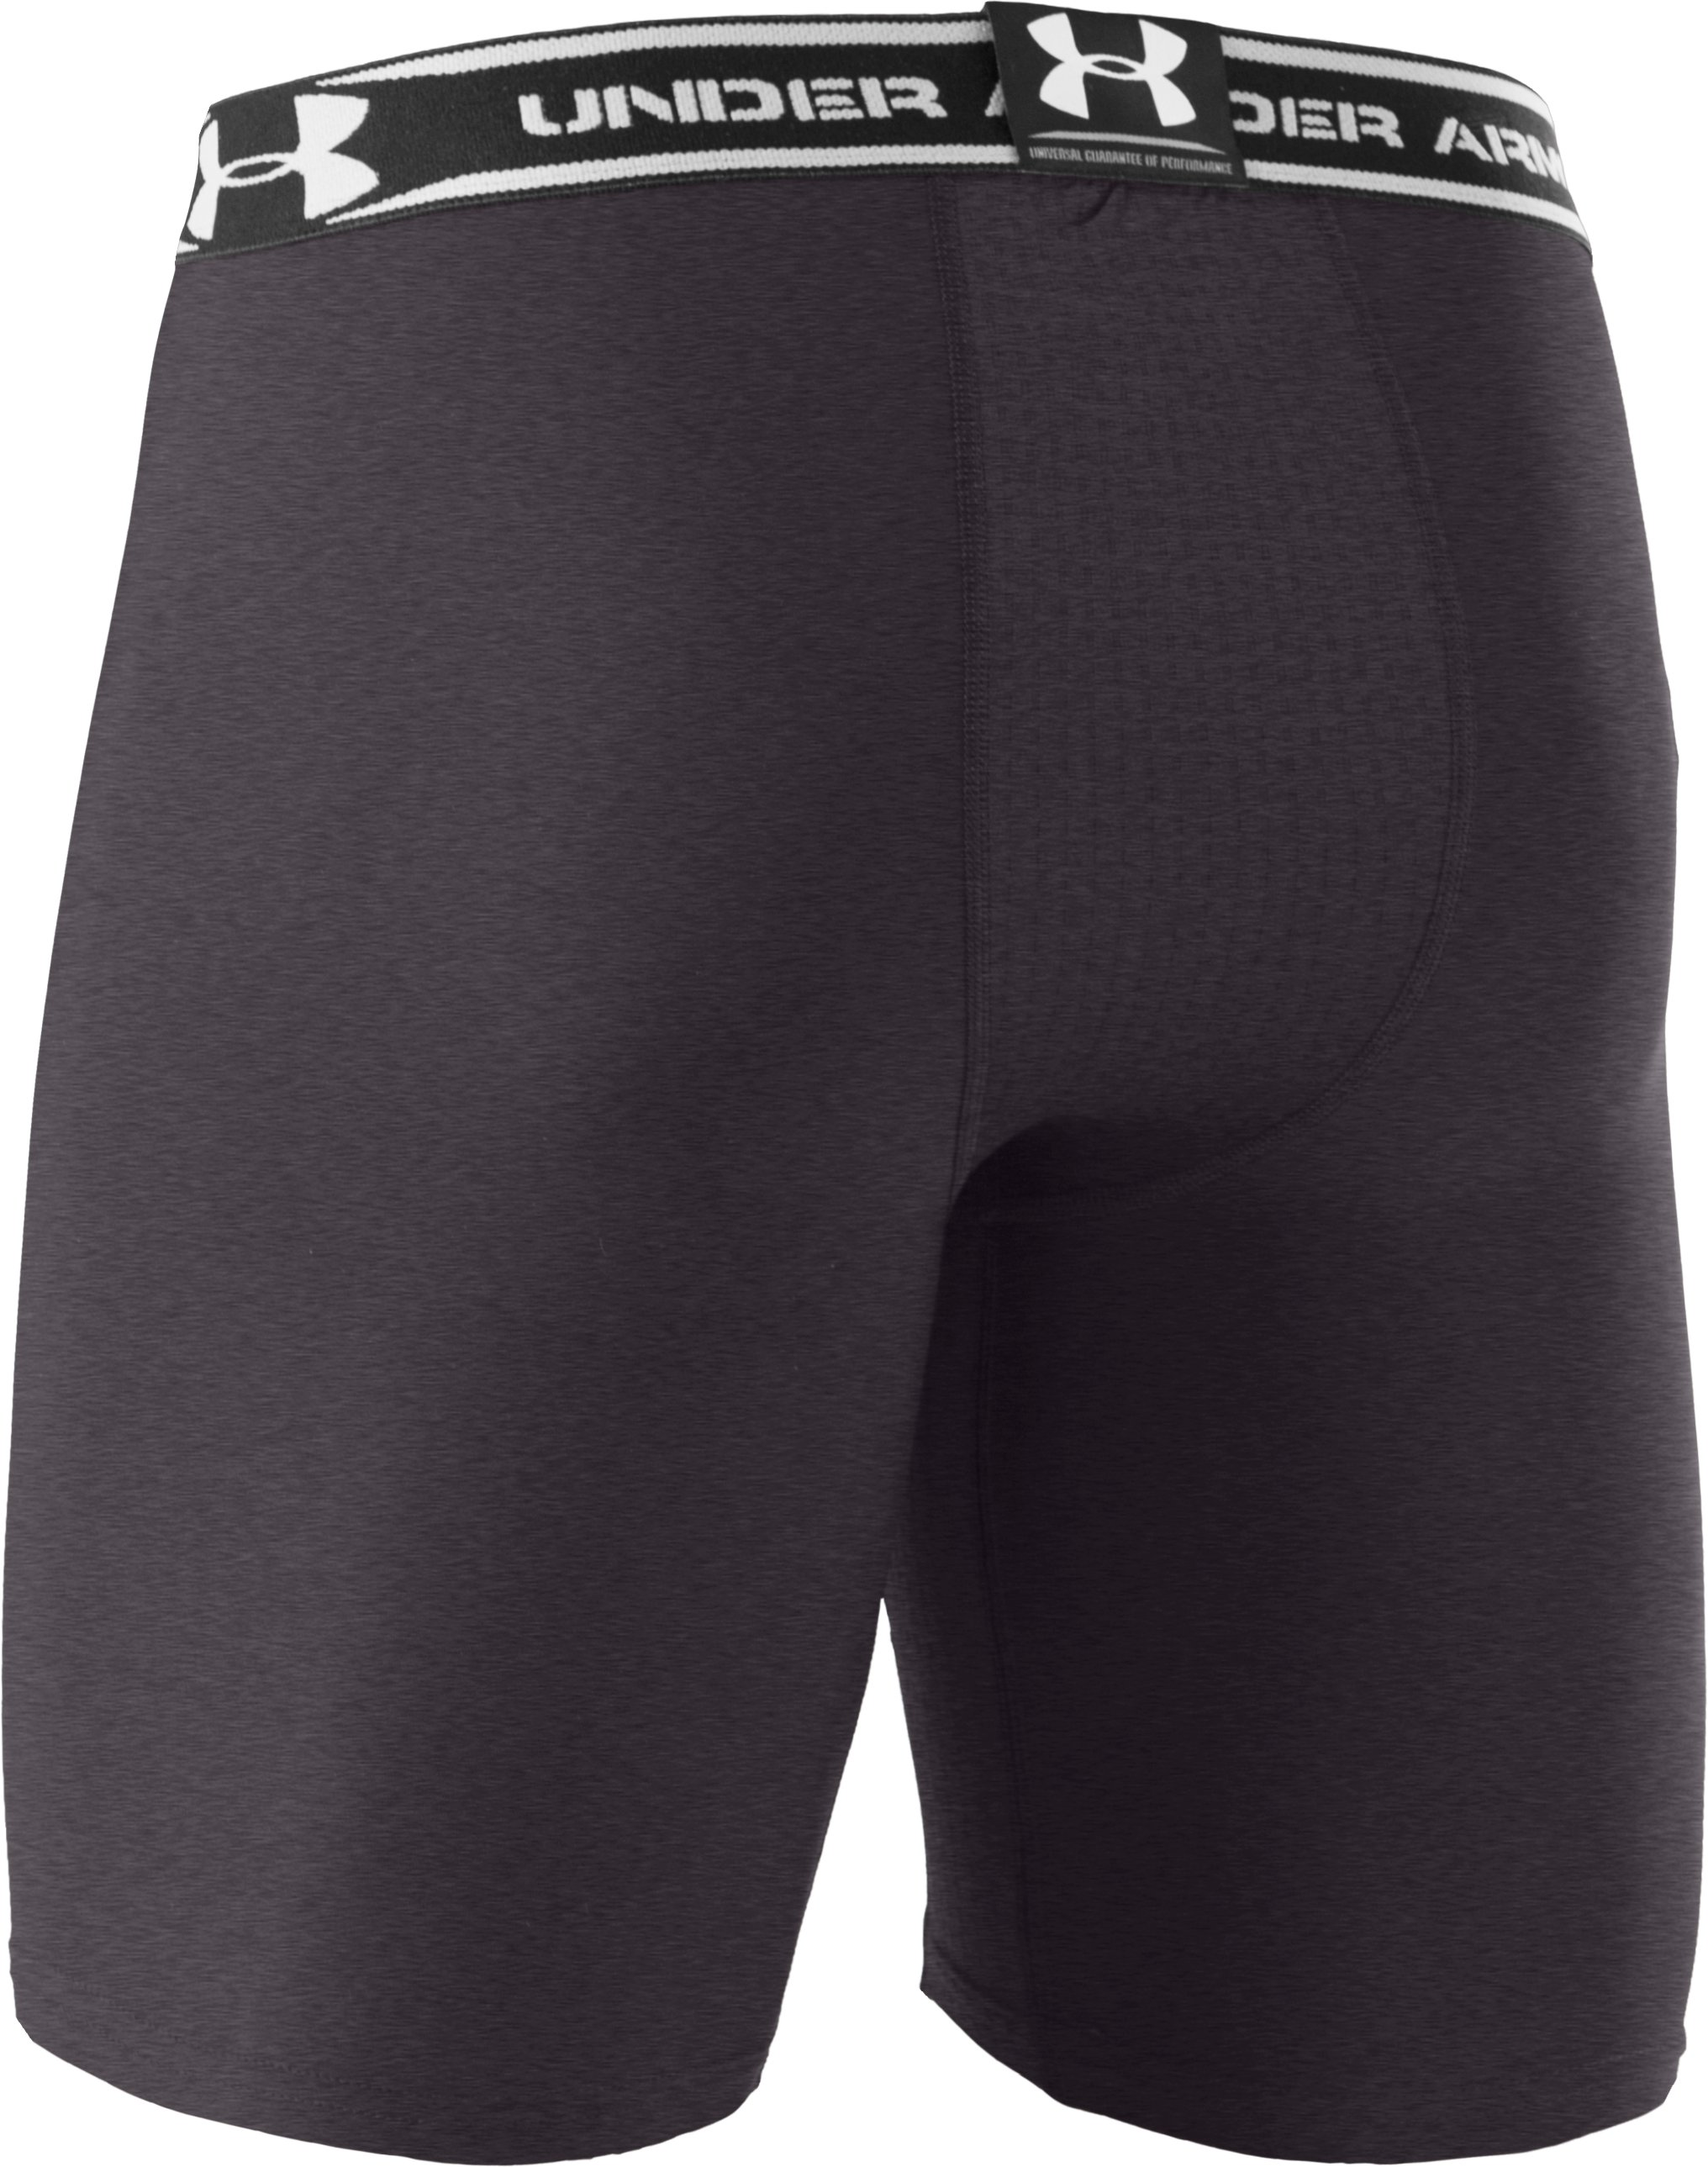 "Men's HeatGear® Vented 7"" Compression Shorts, Carbon Heather"